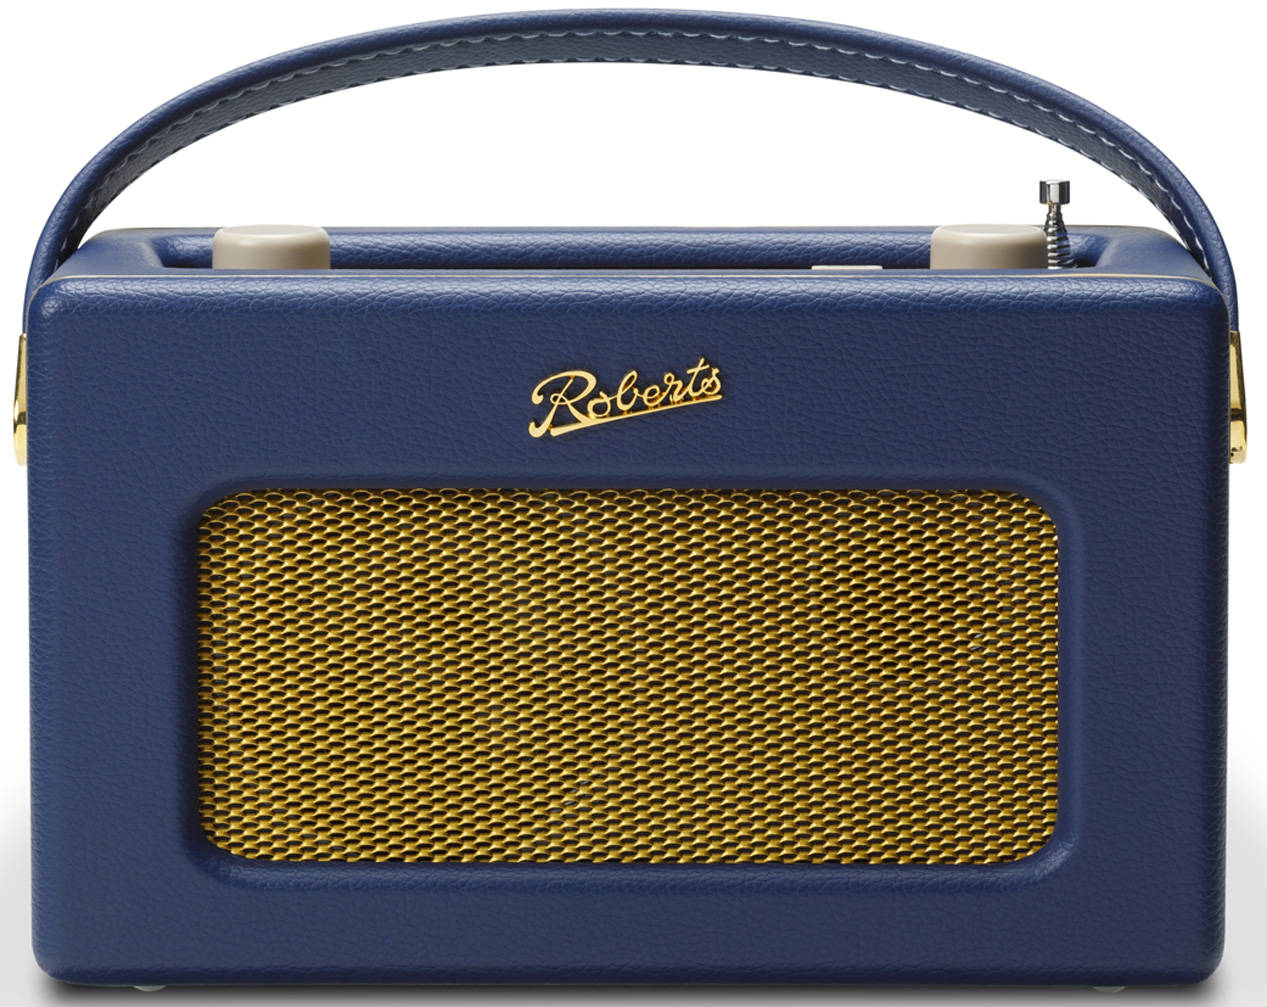 ROBERTS iSTREAM3 Blue